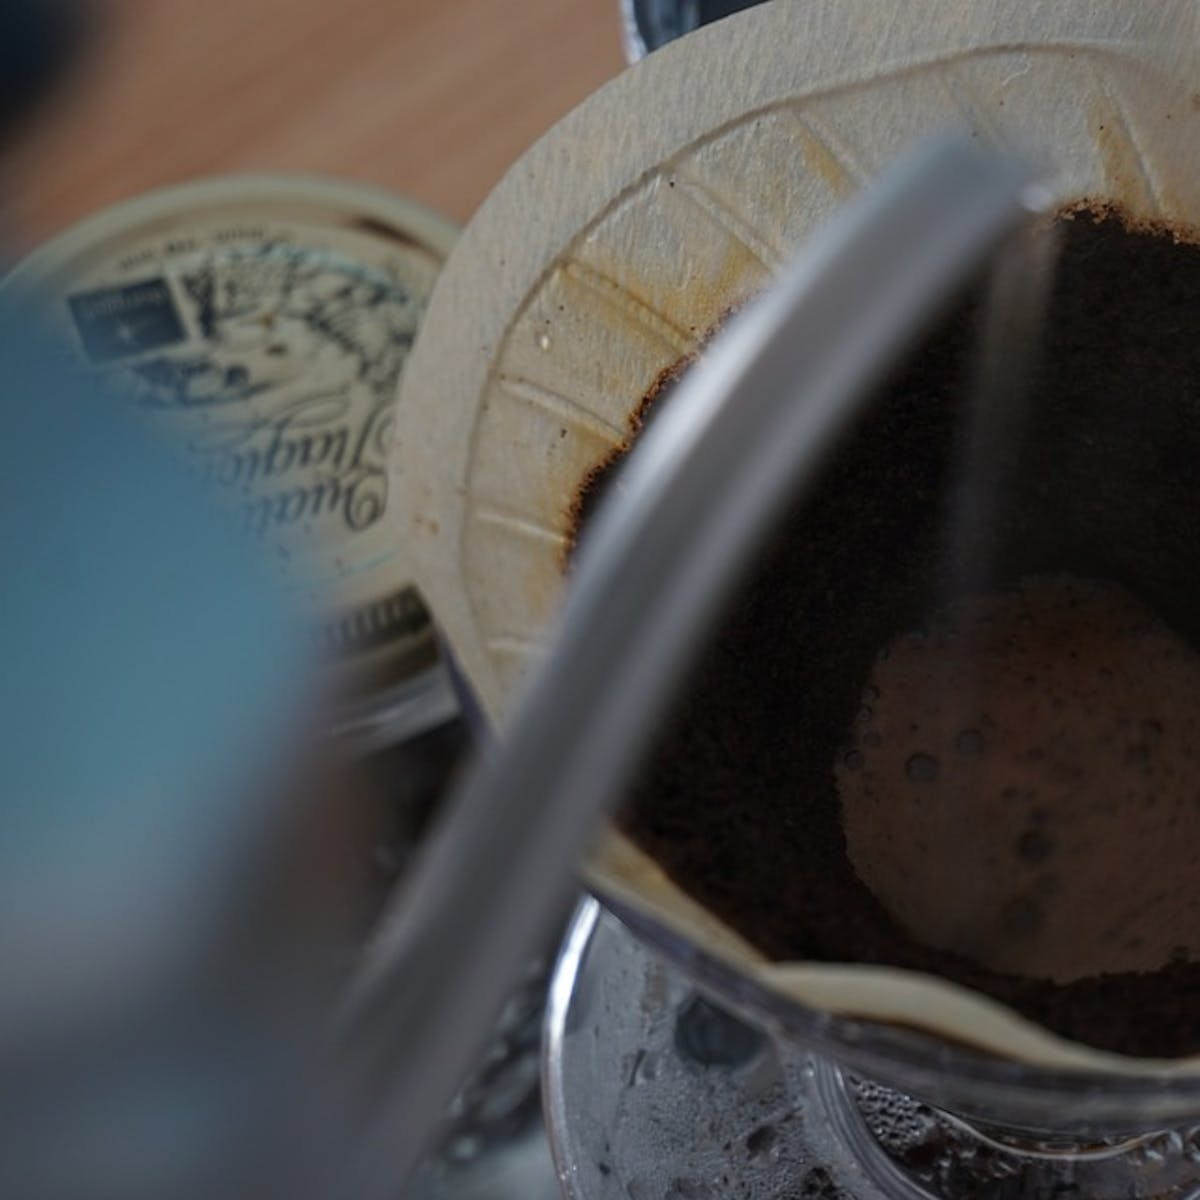 How to Make Great Coffee Consistently, According to Science